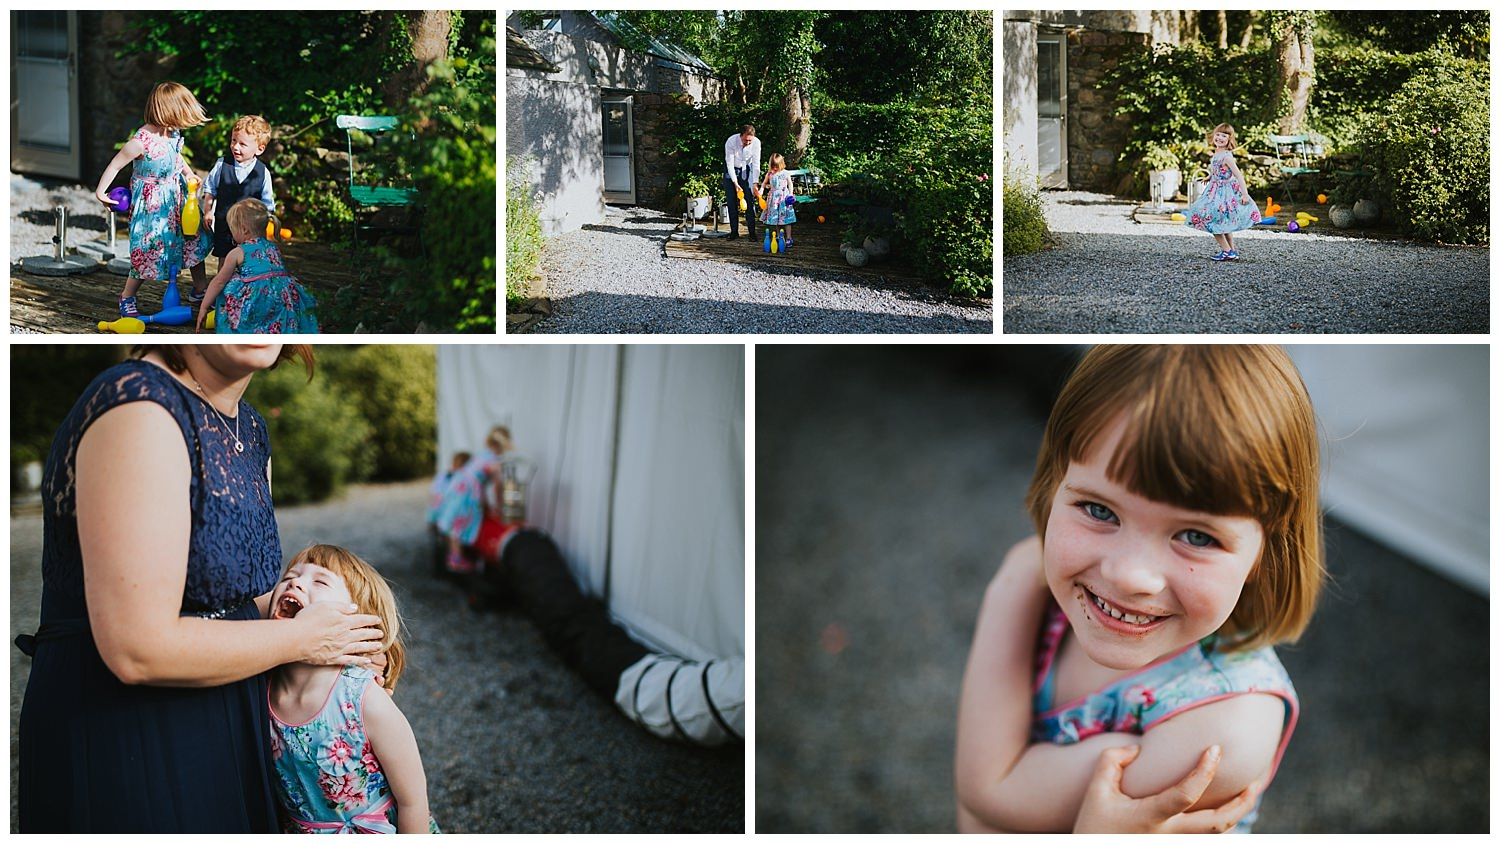 e+t_ballilogue_kilkenny_wedding_photographer_liviafigueiredo_180.jpg